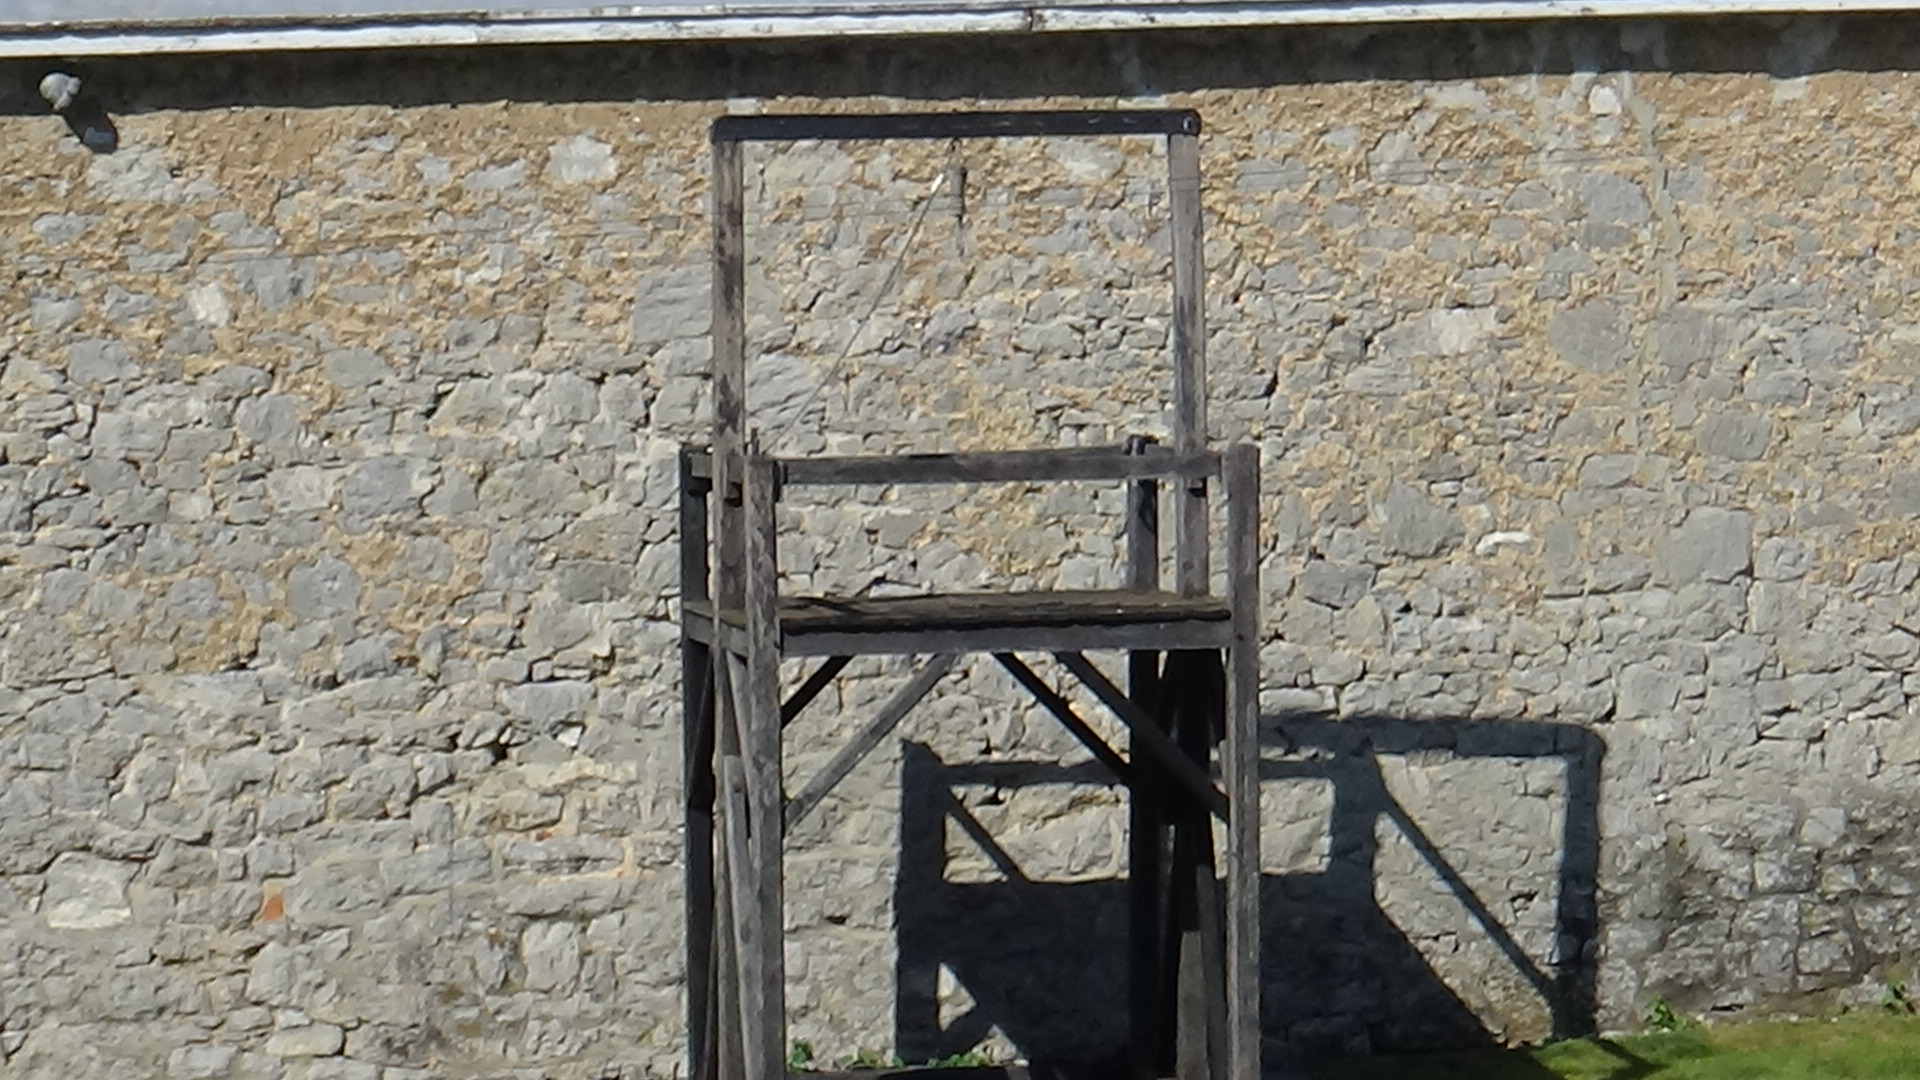 File:Original Gallows in the courtyard of the old Franklin